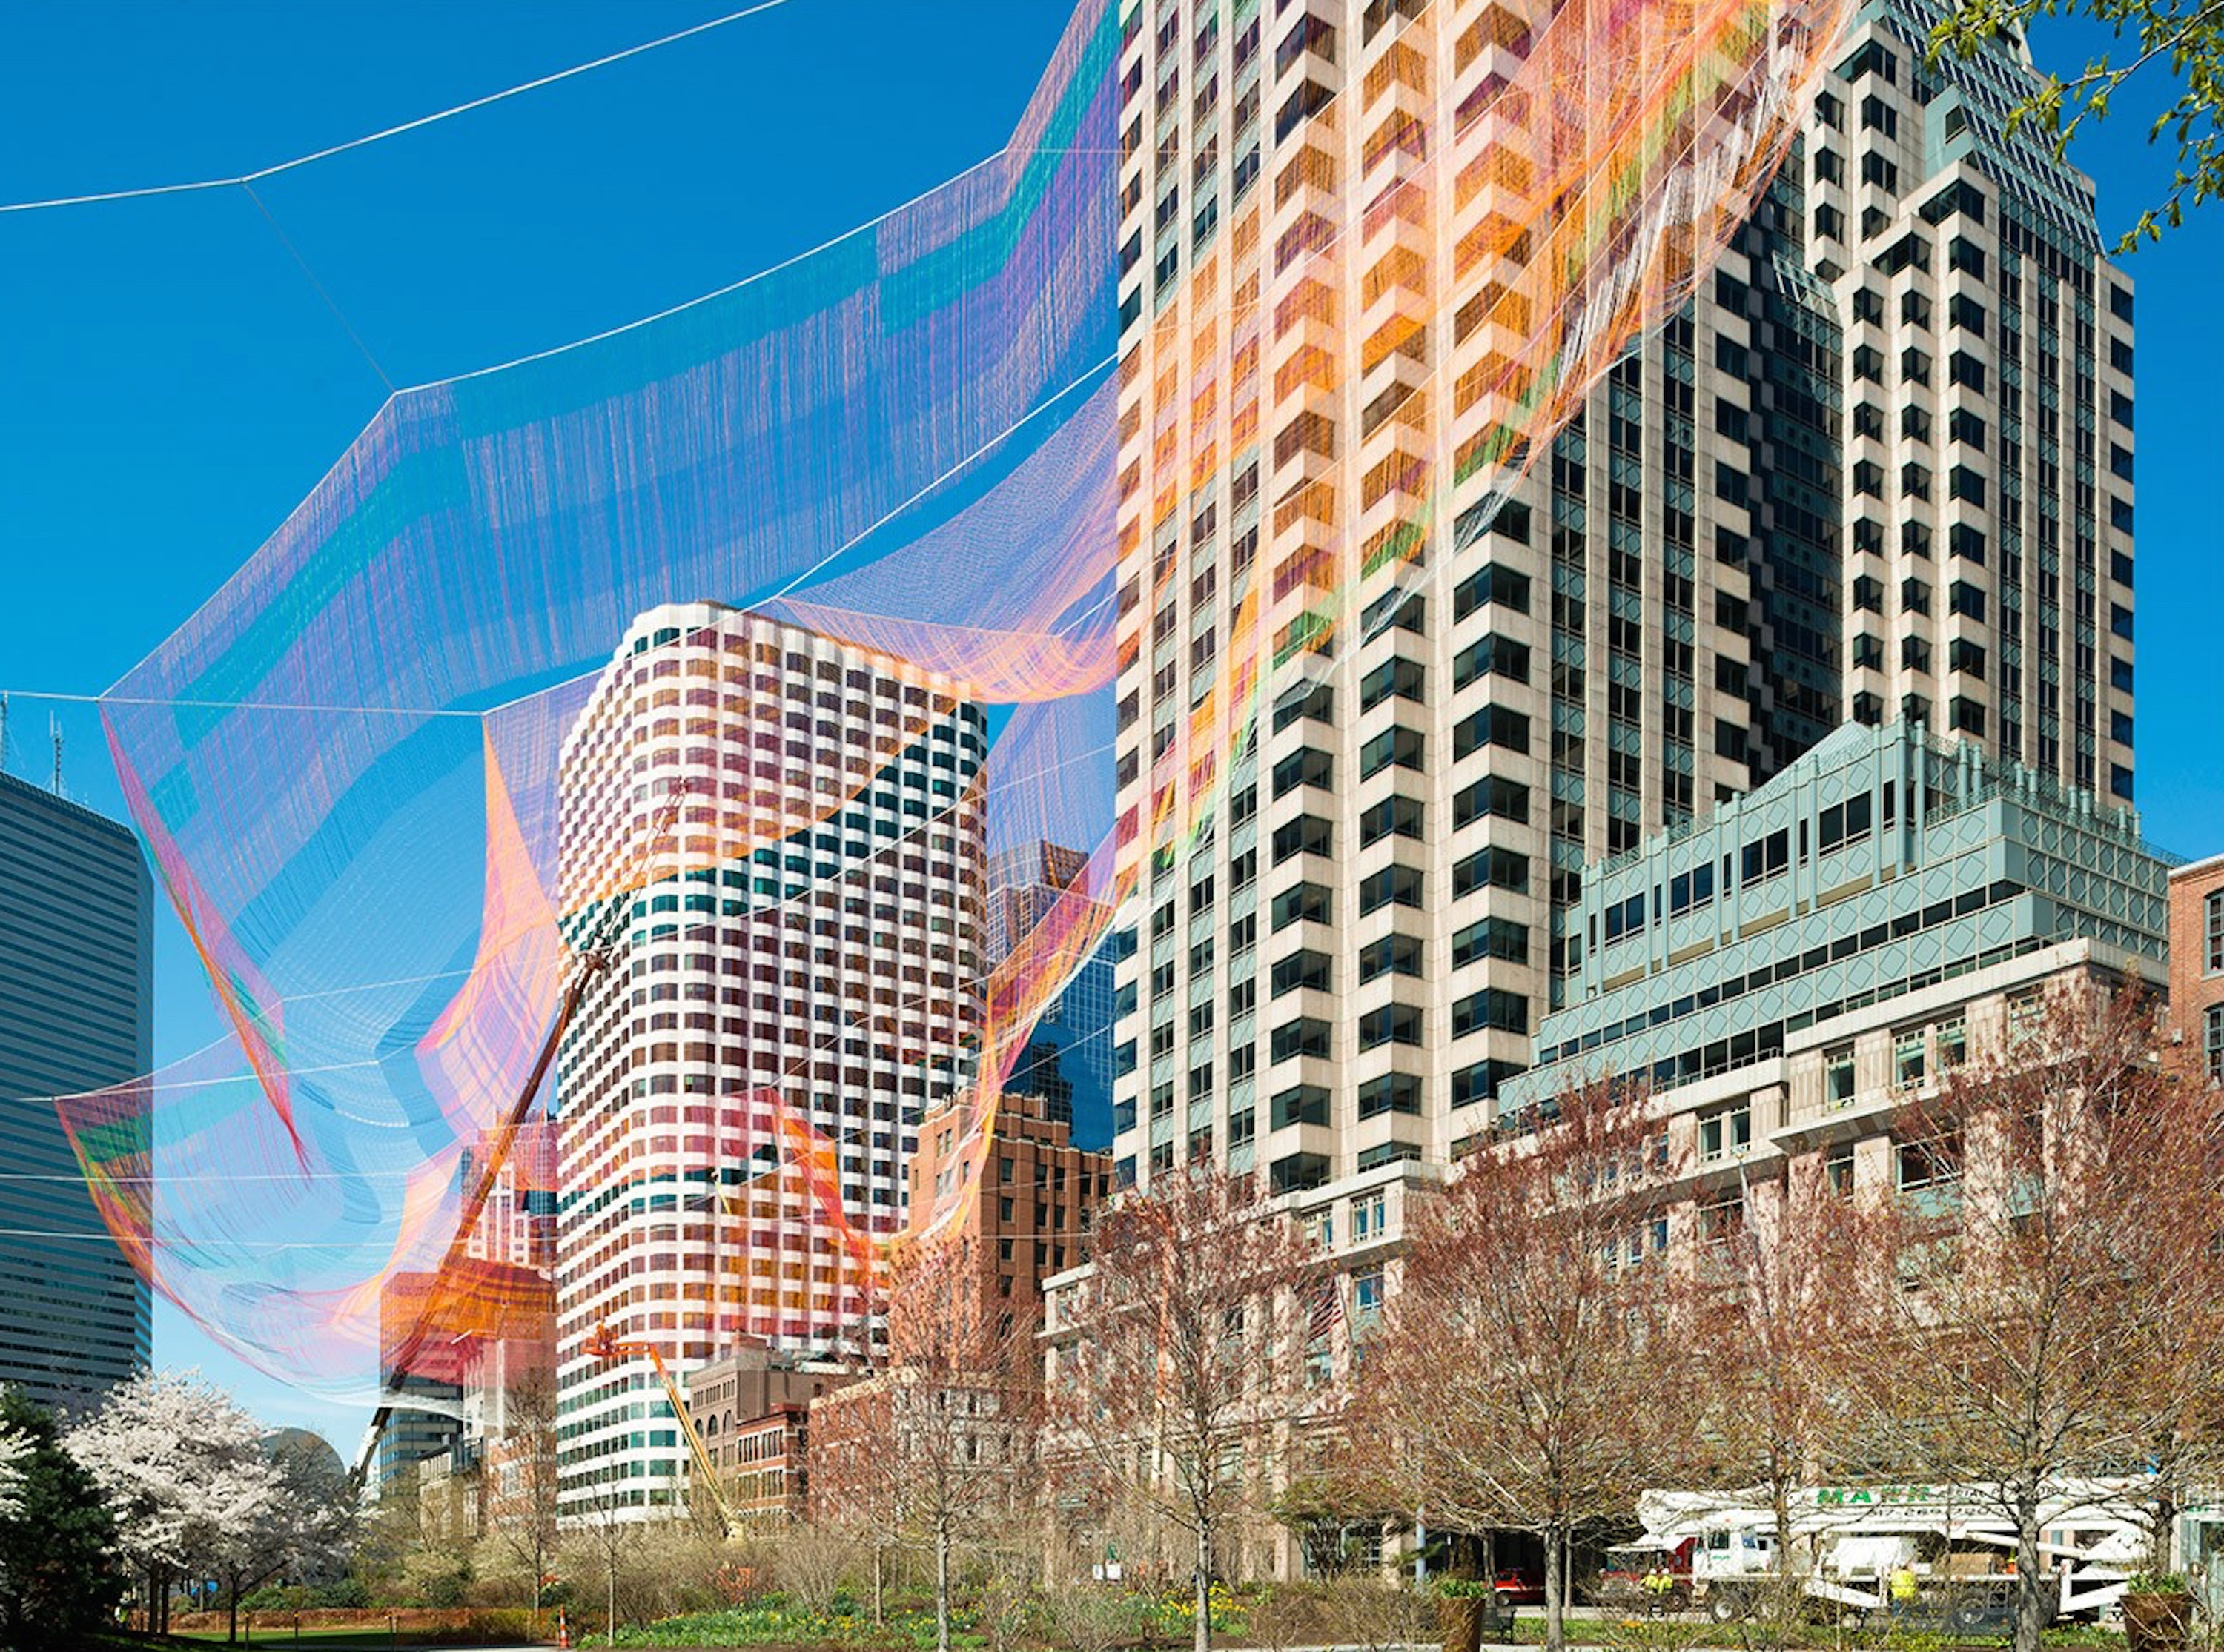 Shawmut Design and Construction Installs Aerial Sculpture in Heart of Boston